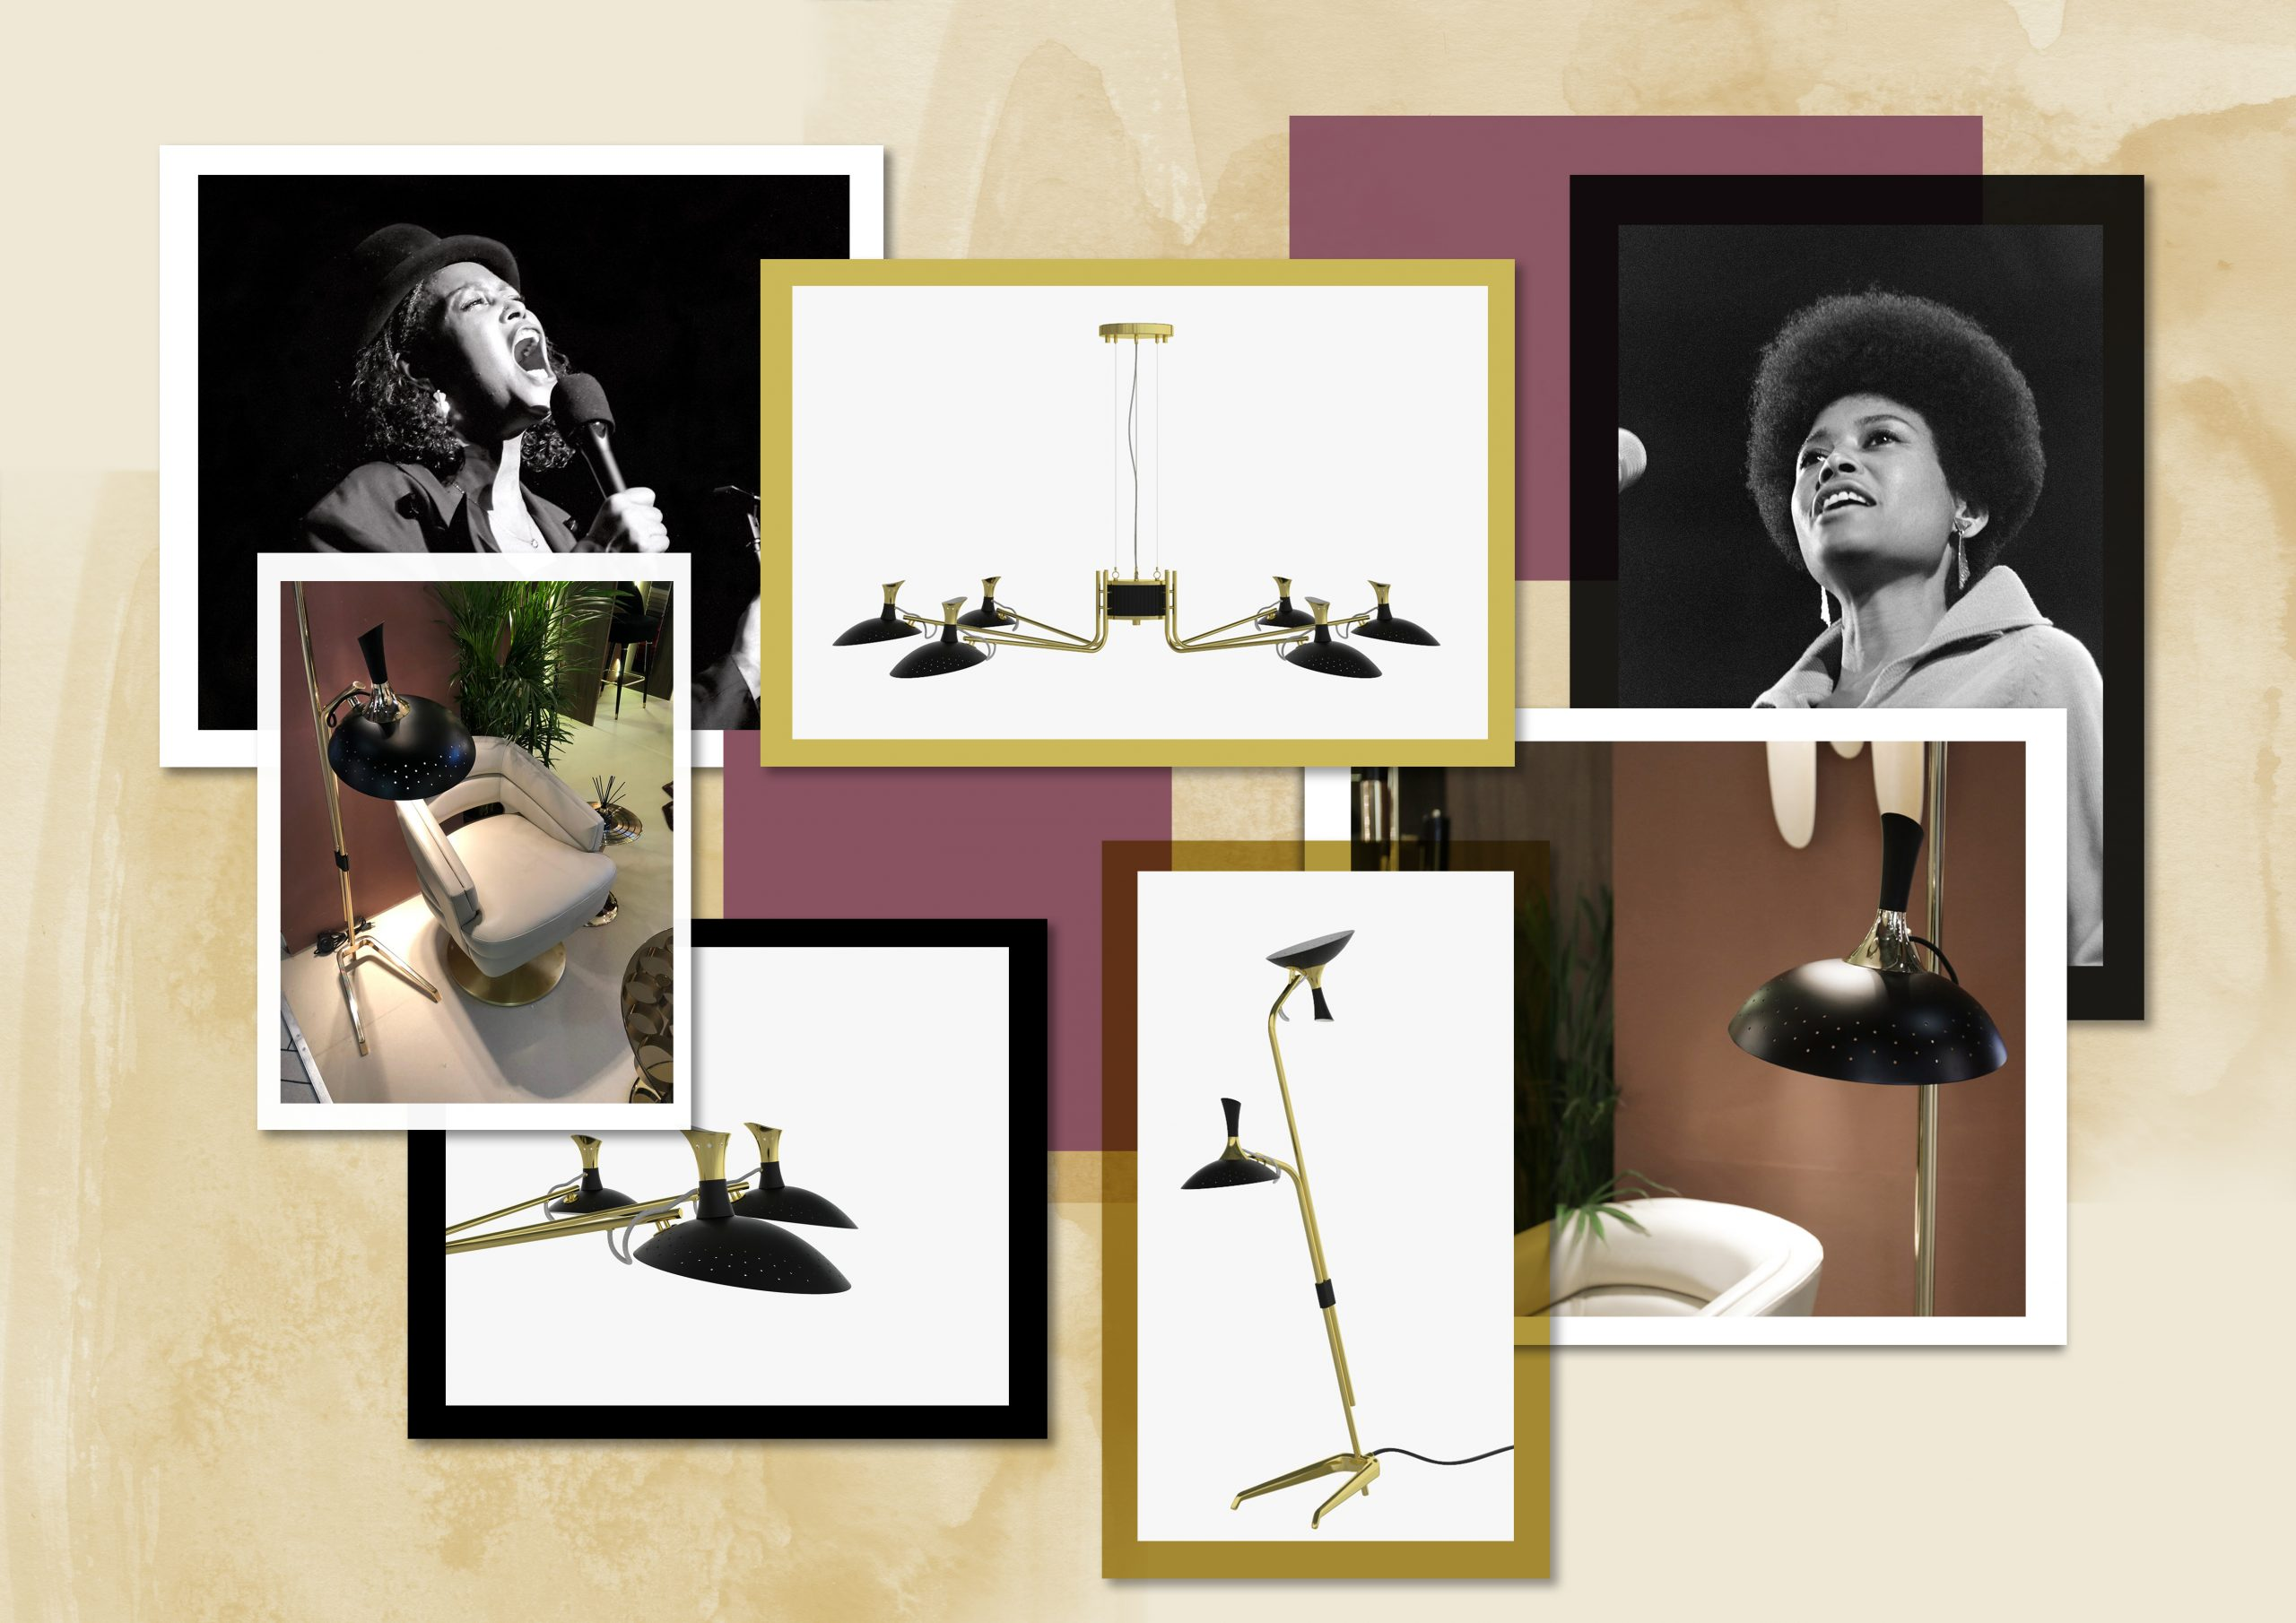 black history month black history month Celebrate Black History Month With These Unique Floor Lamps Ideas! Celebrate Black History Month With These Unique Floor Lamps Ideas4 scaled